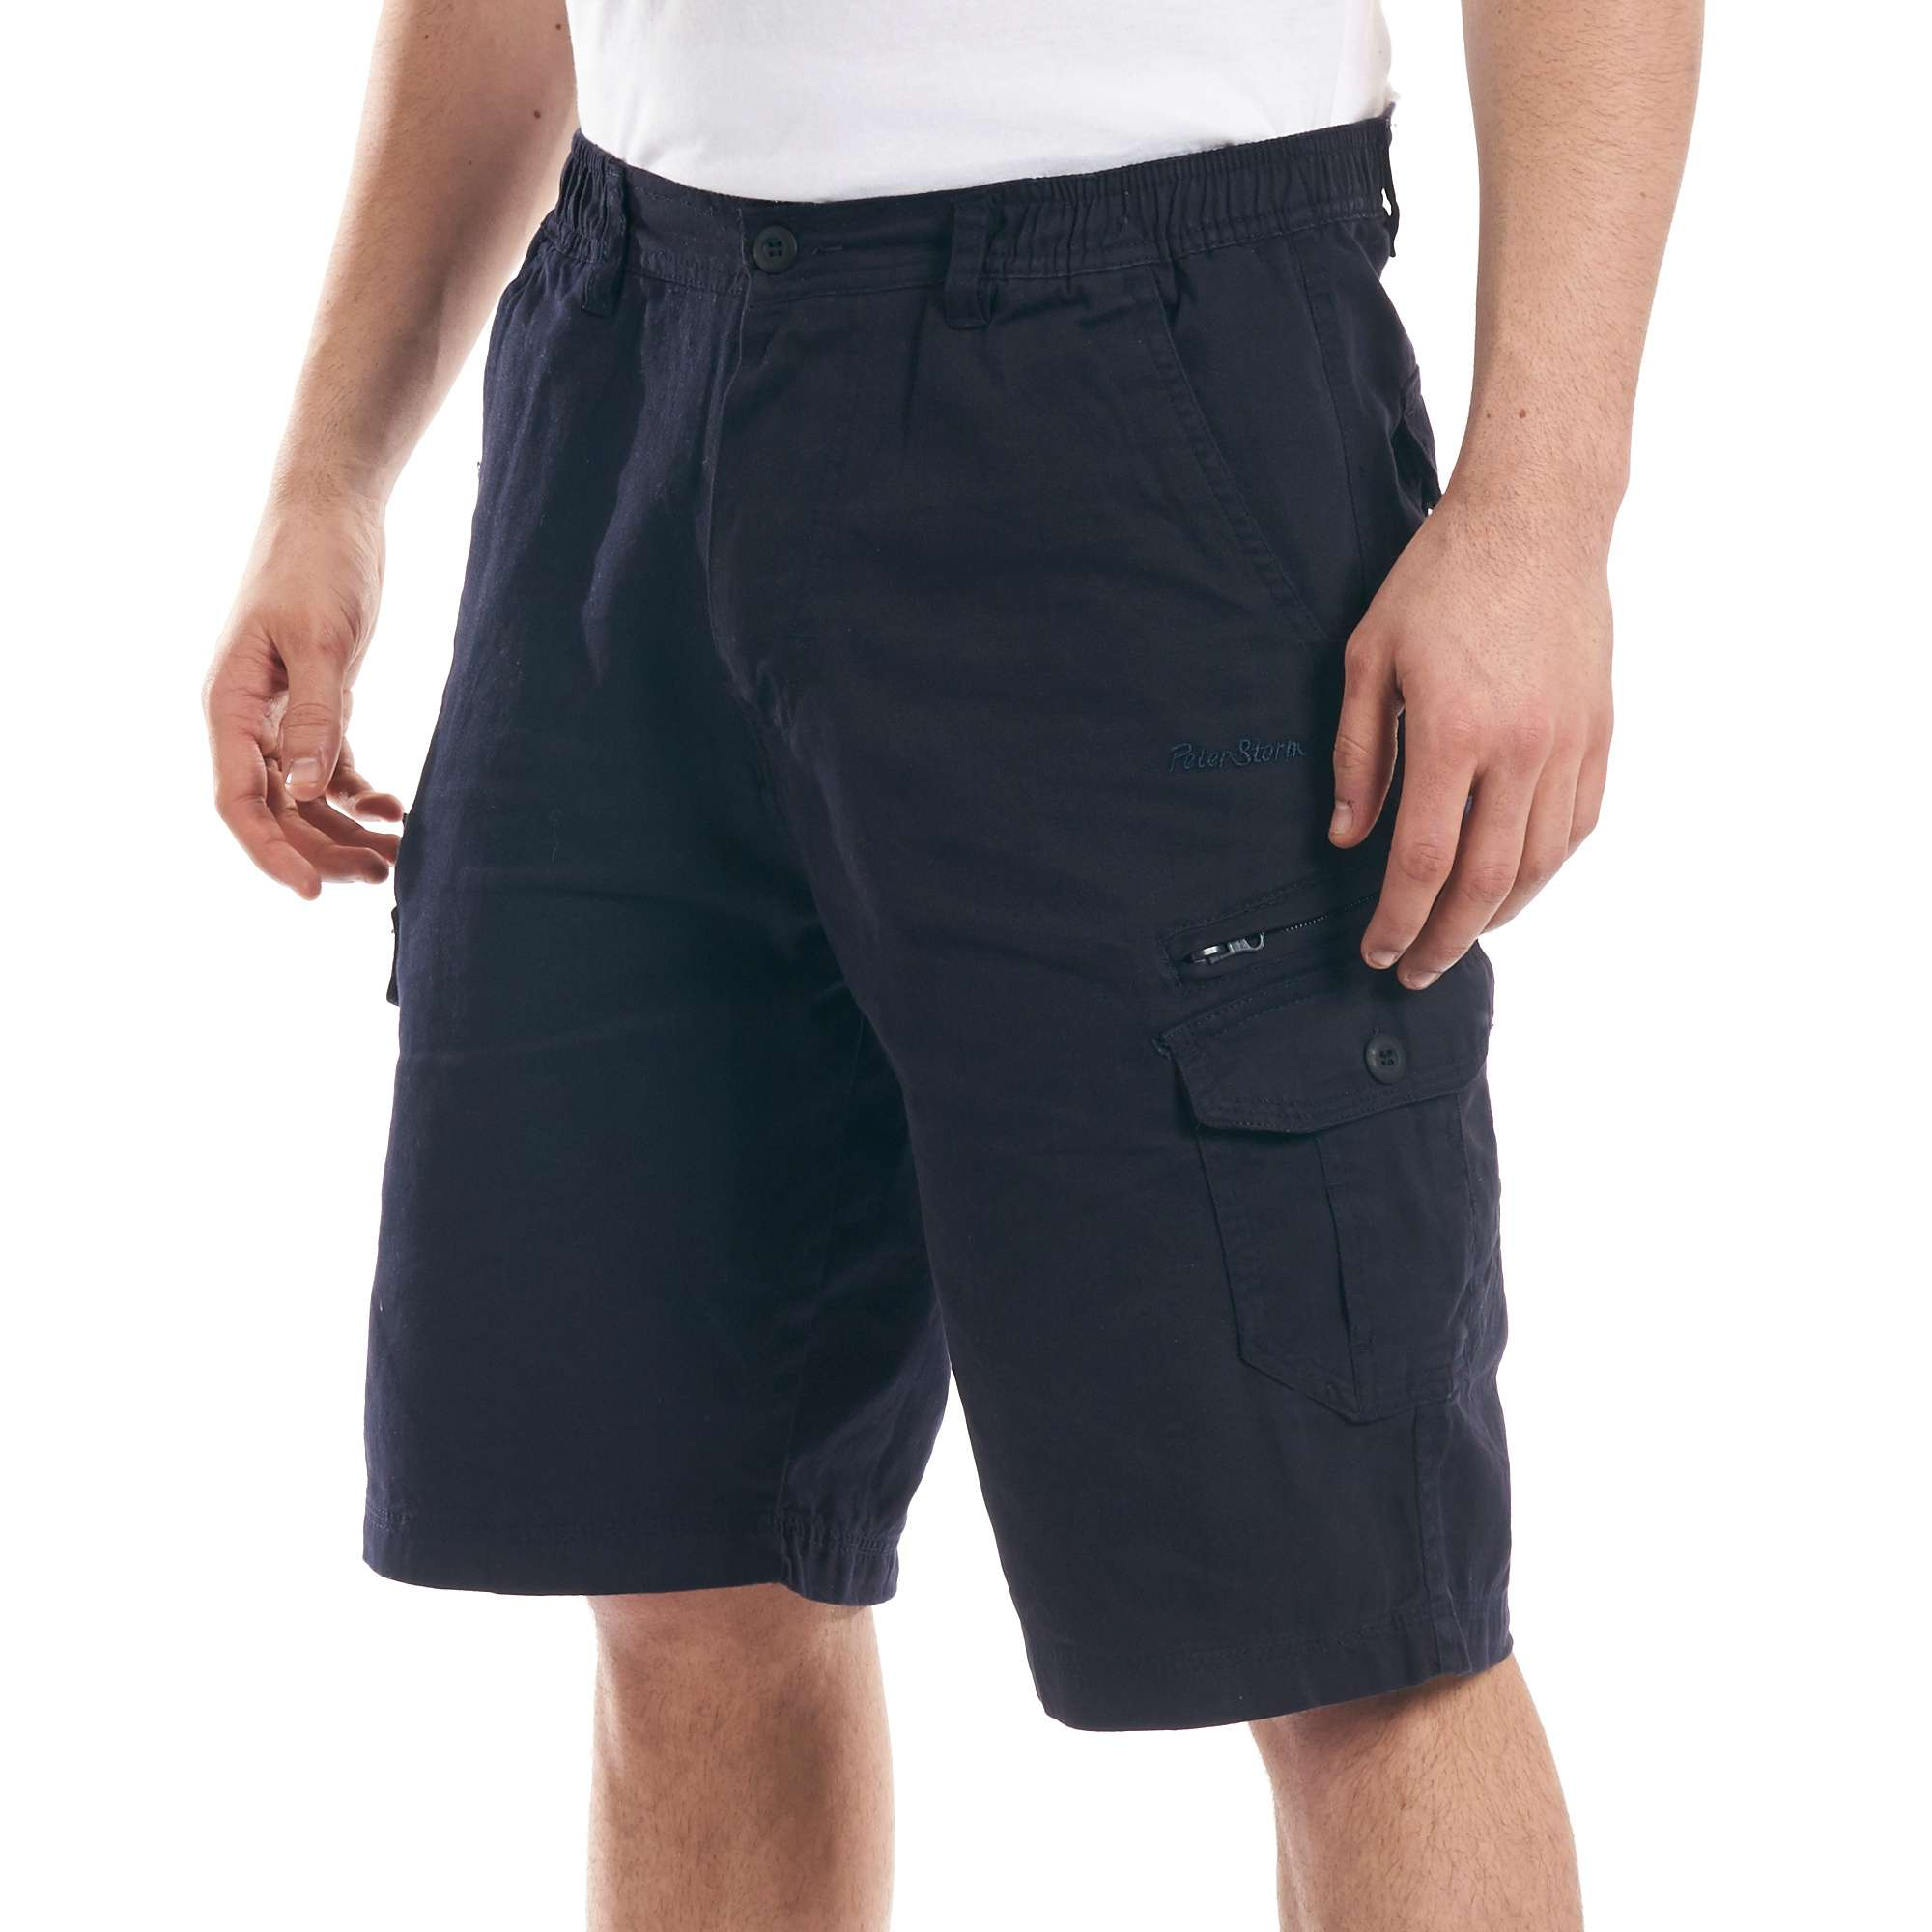 PETER STORM Men's Meteor Shorts